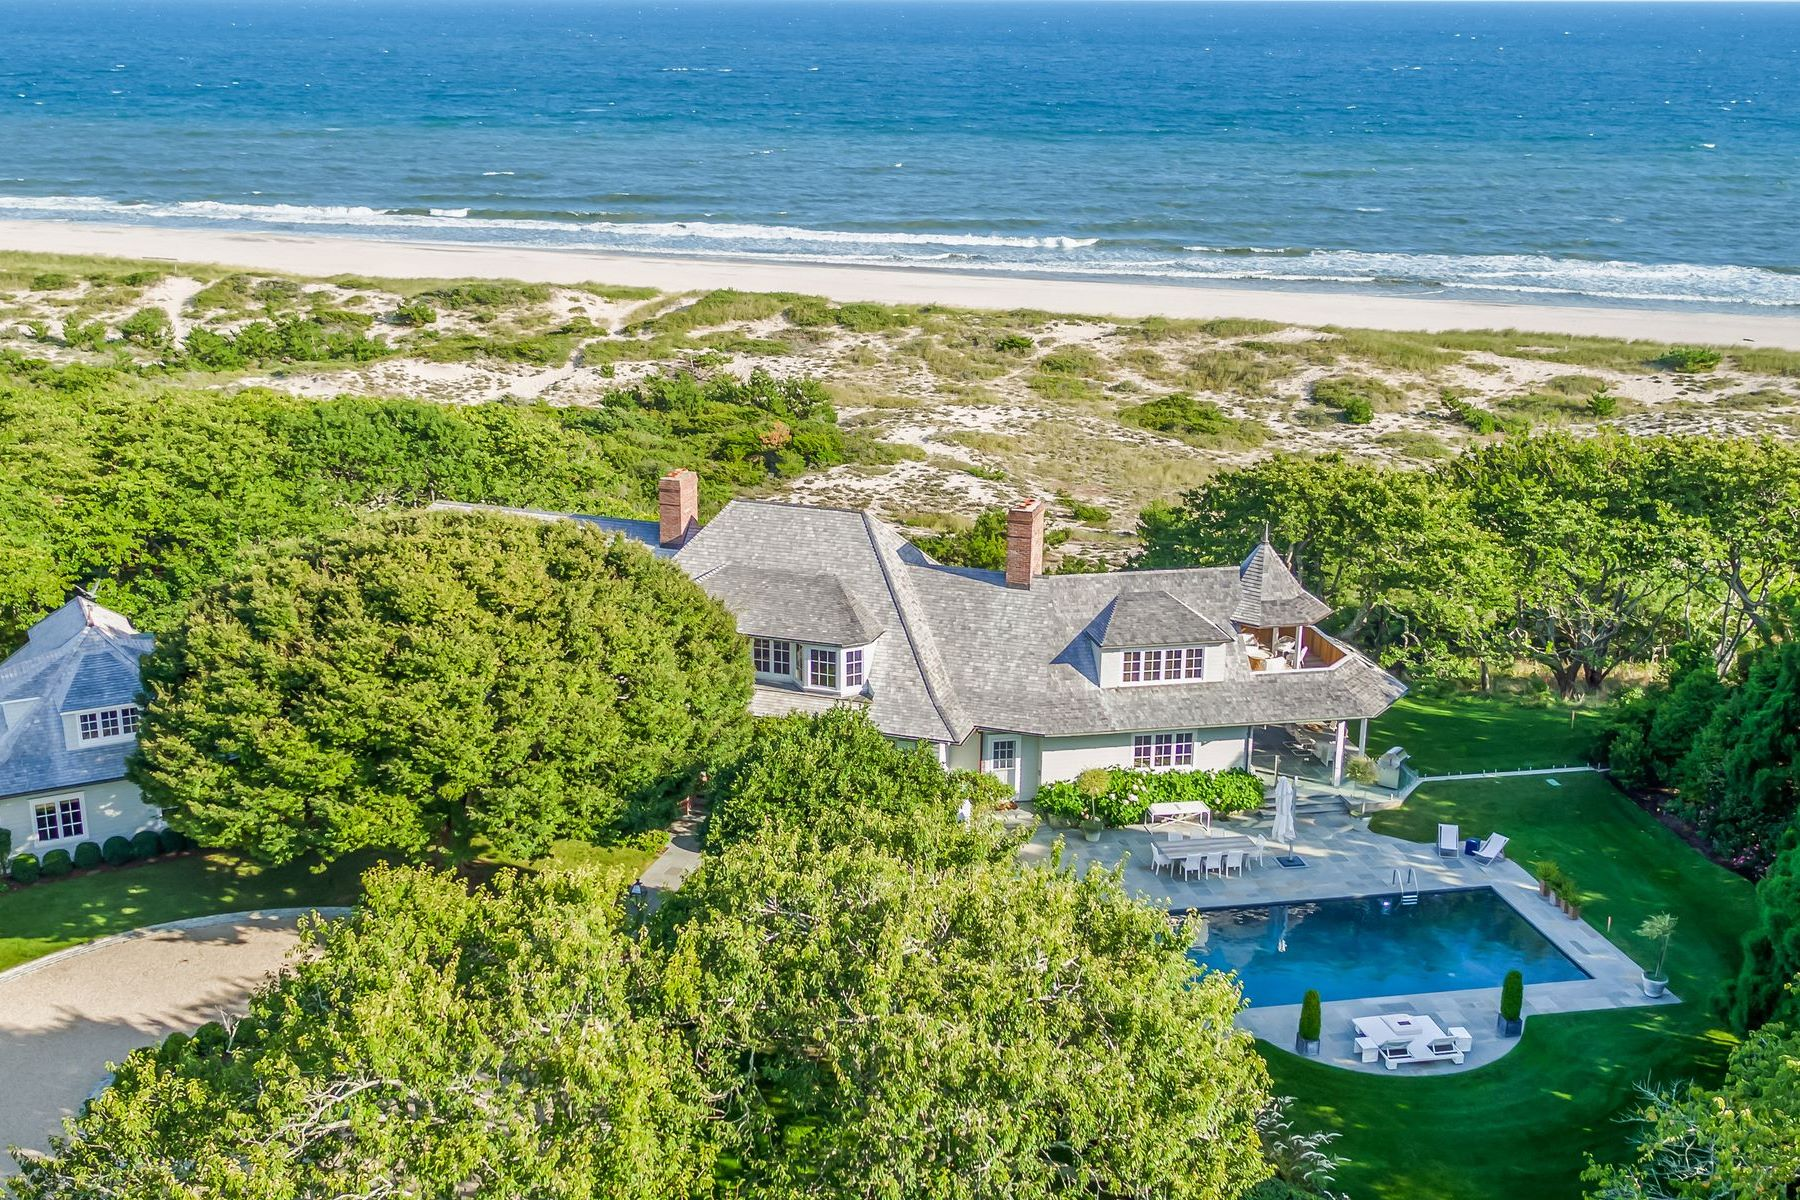 Single Family Homes for Active at East Hampton Oceanfront Estate 32 Windmill Lane East Hampton, New York 11937 United States